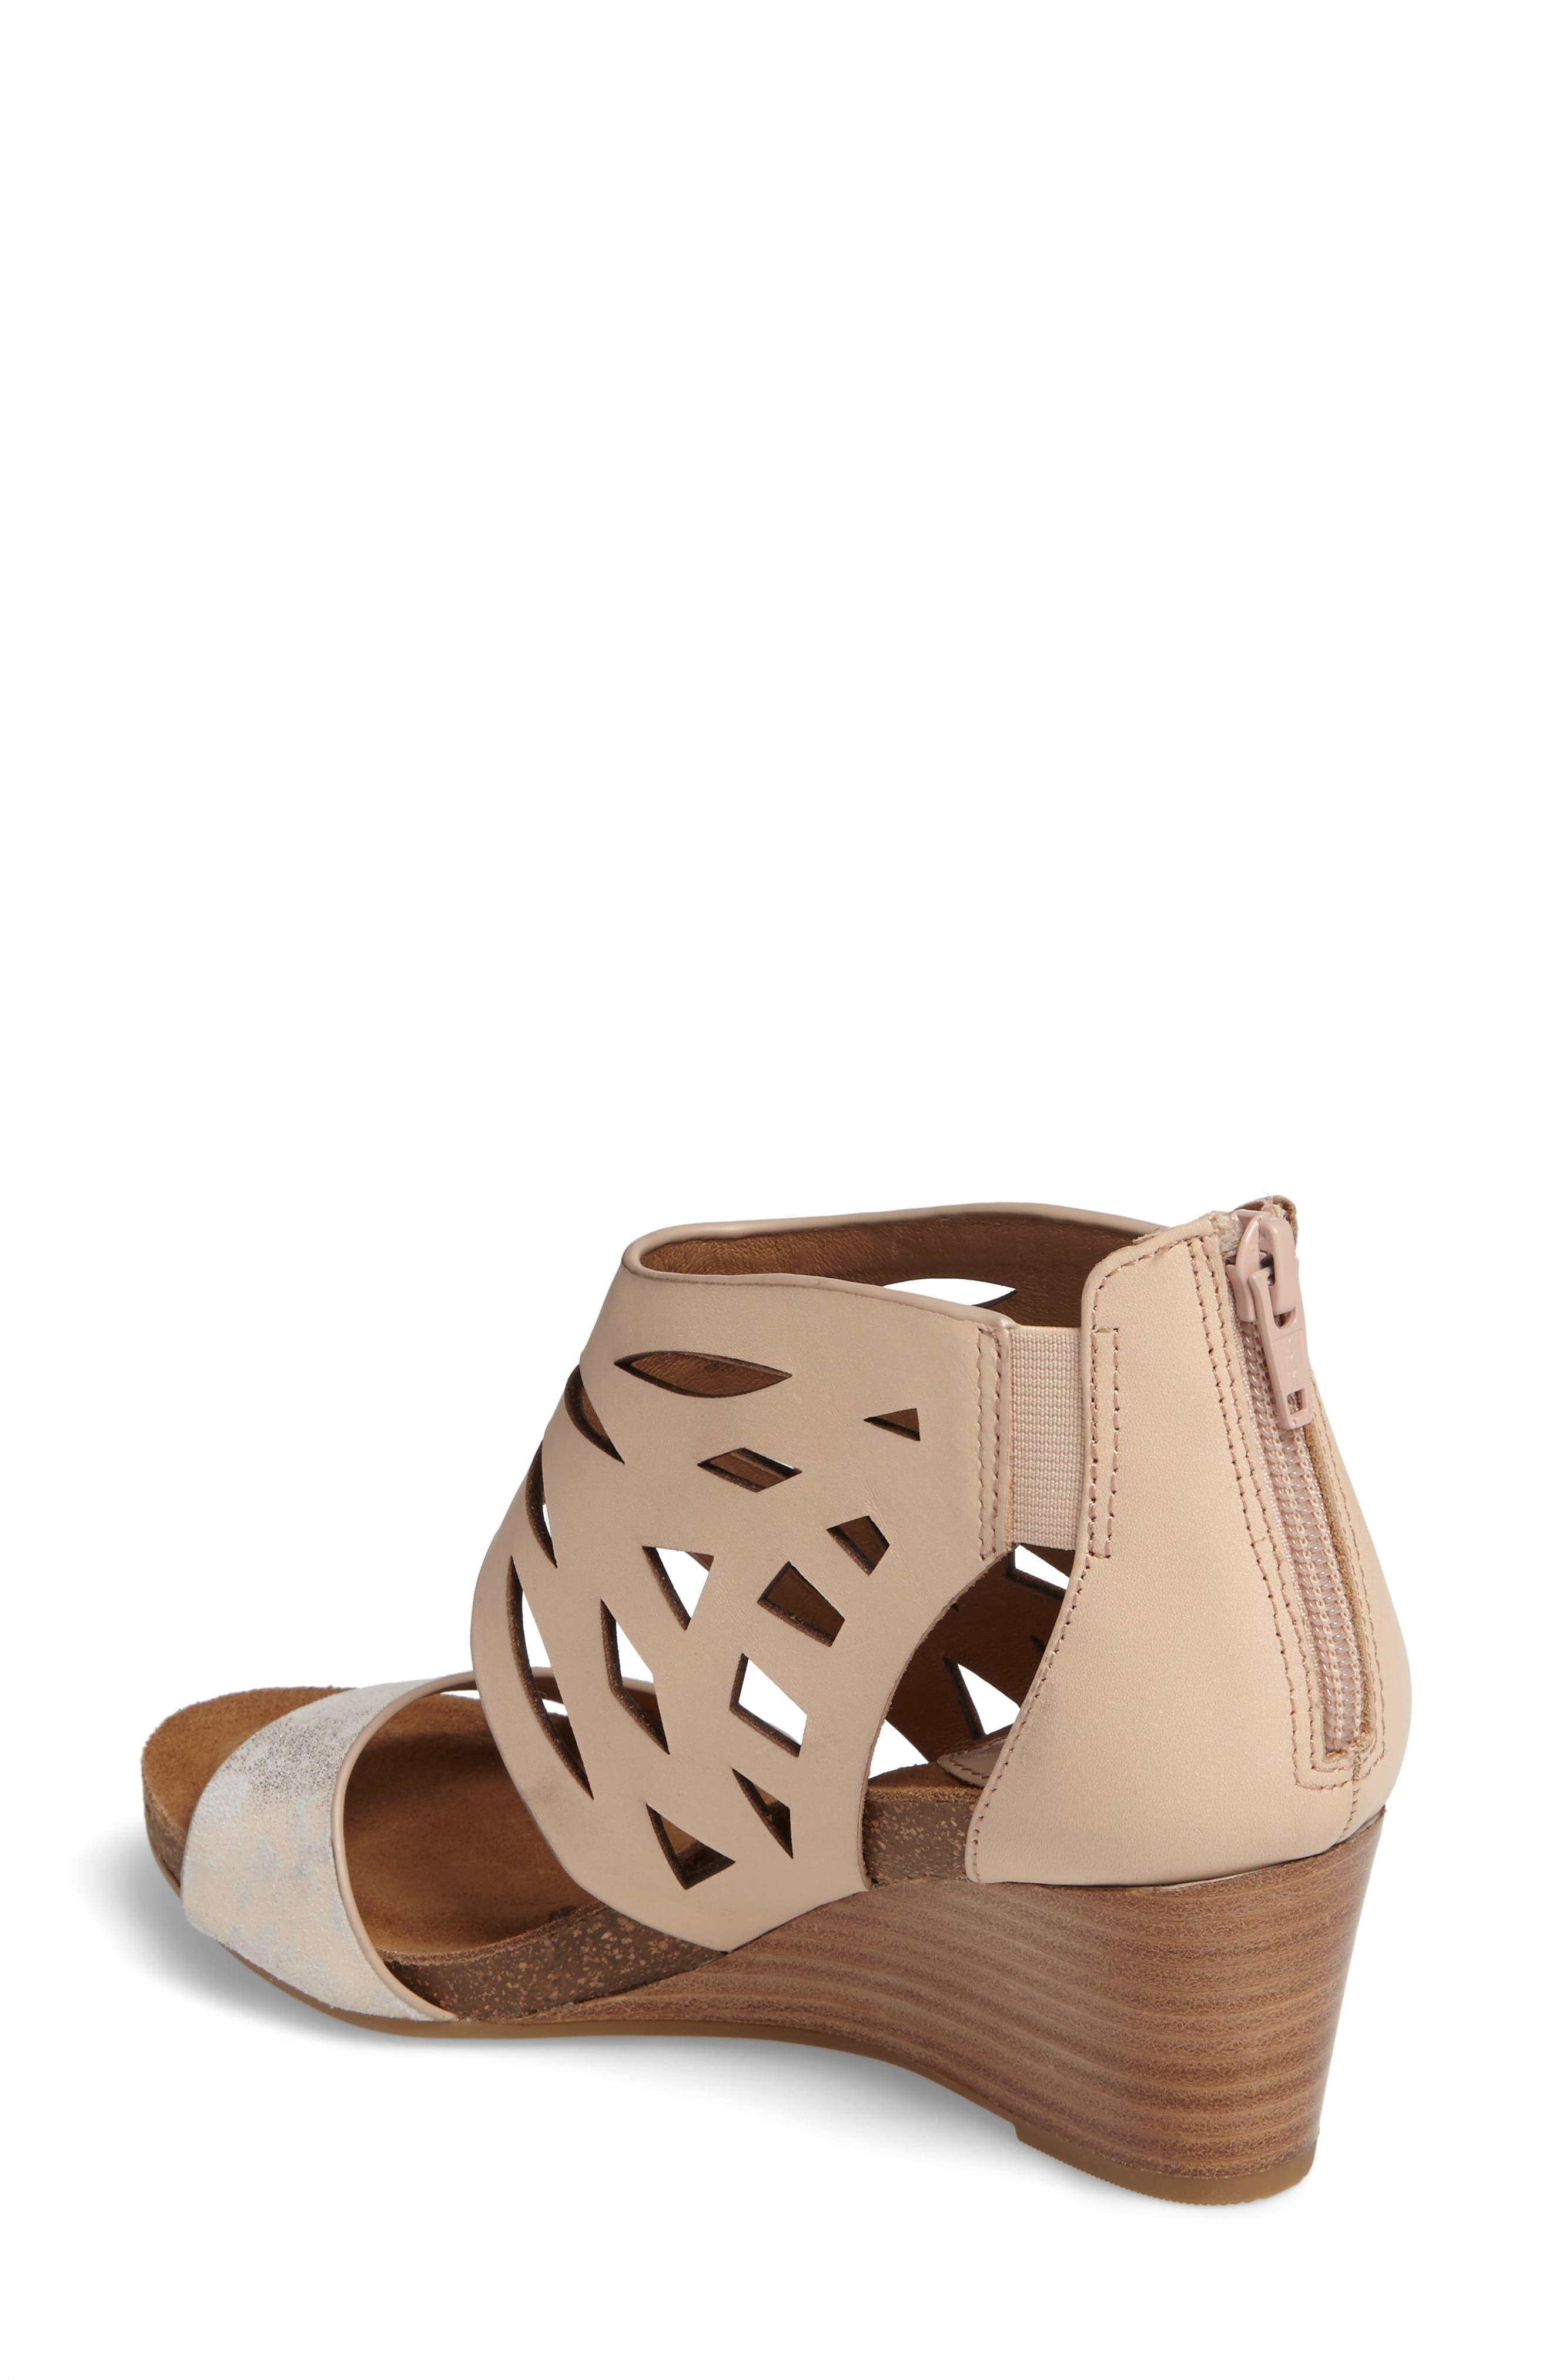 Mystic Perforated Wedge Sandal,                             Alternate thumbnail 2, color,                             Blush/ Ivory Leather